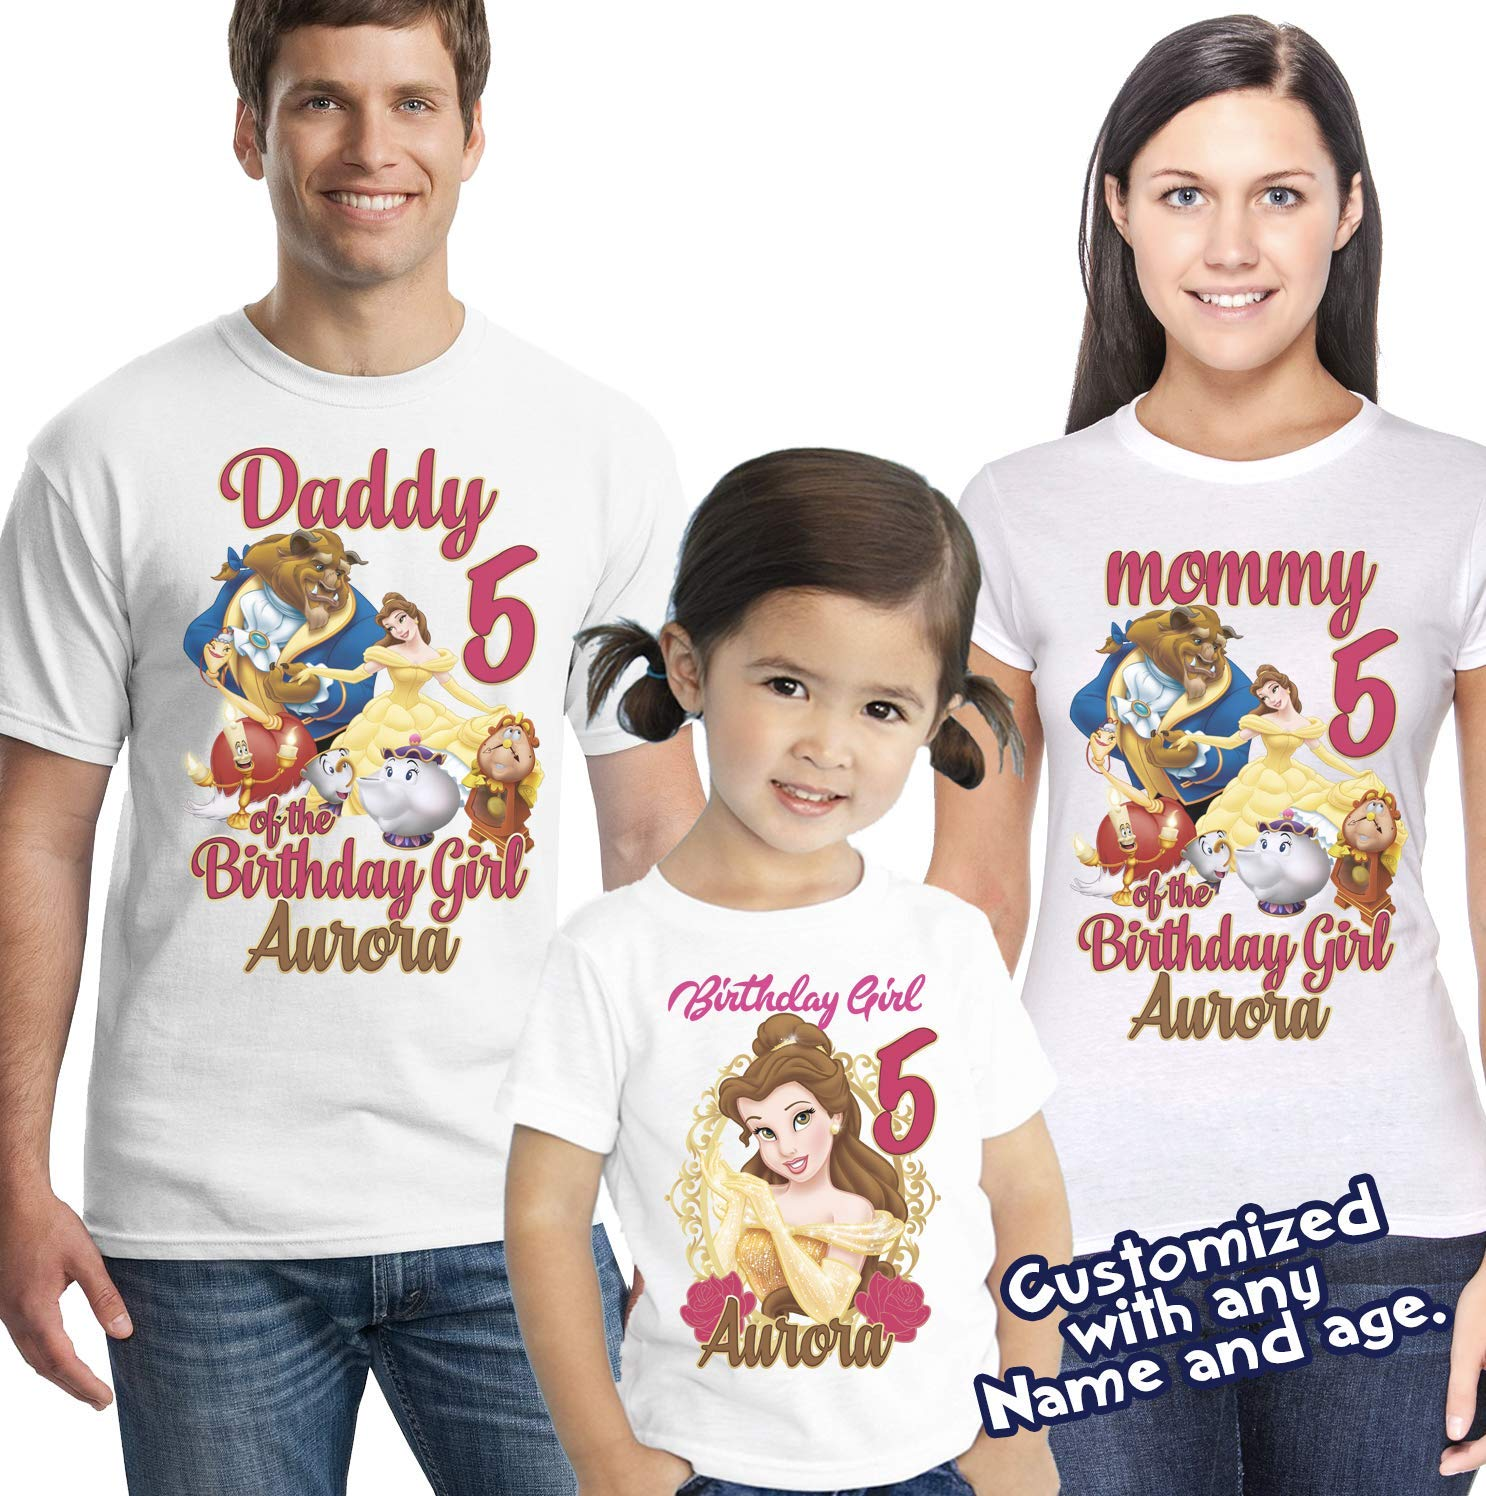 Beauty and the Beast Princess Belle Unisex Kids Boy Girl Top Tee Youth T-Shirt